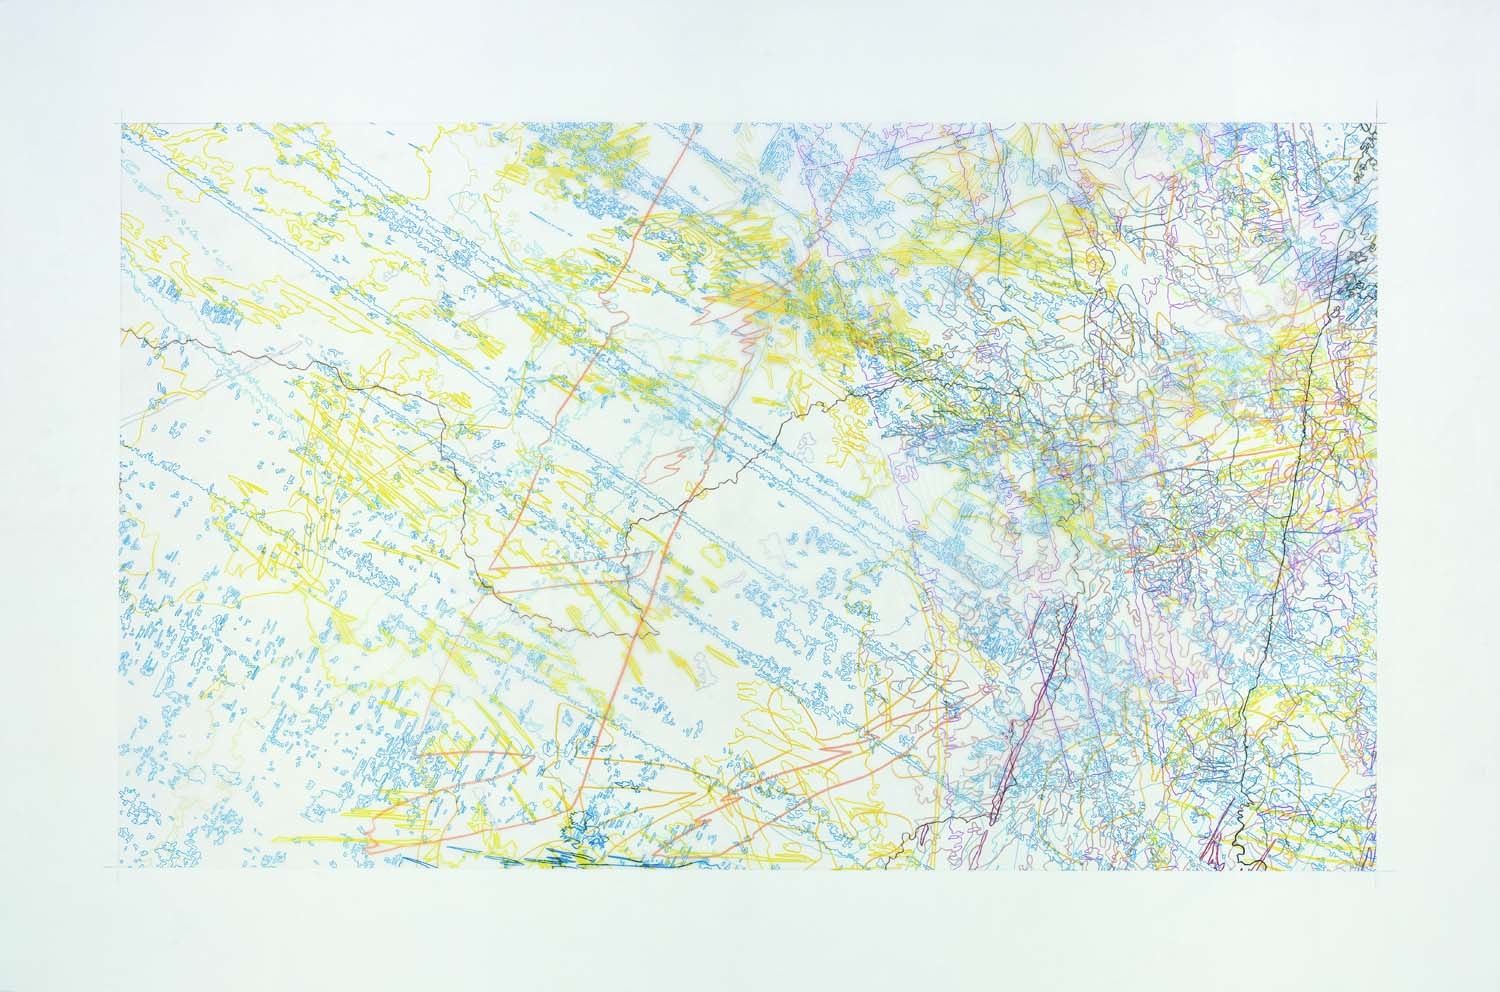 #265 Drawing (Tracings from the Indianapolis Motor Speedway and the L.A. River)